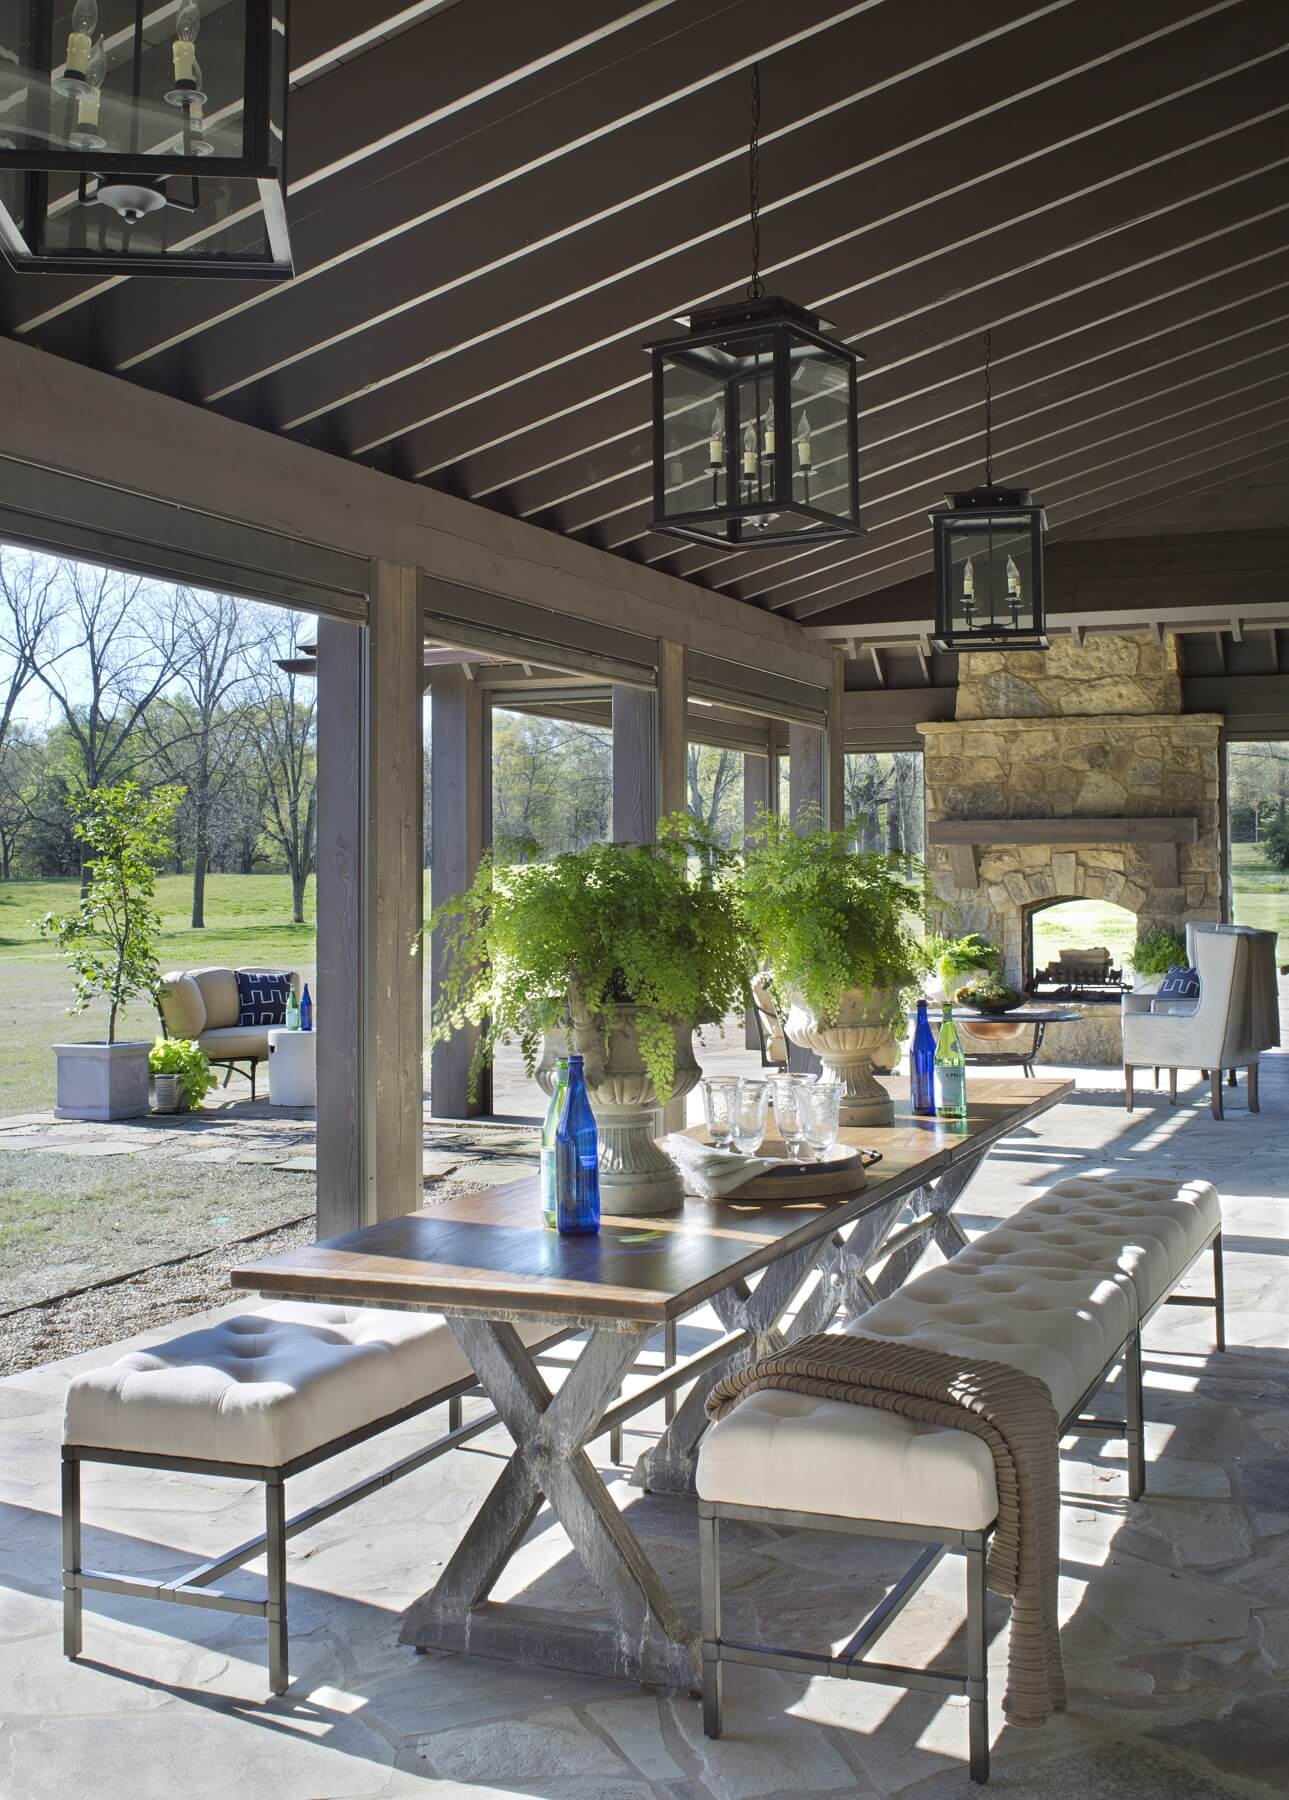 A long loggia features a two-sided fireplace at one end, as well as phantom screens that can lower to keep bugs at bay. The home rests on 22 acres in Eads, TN.